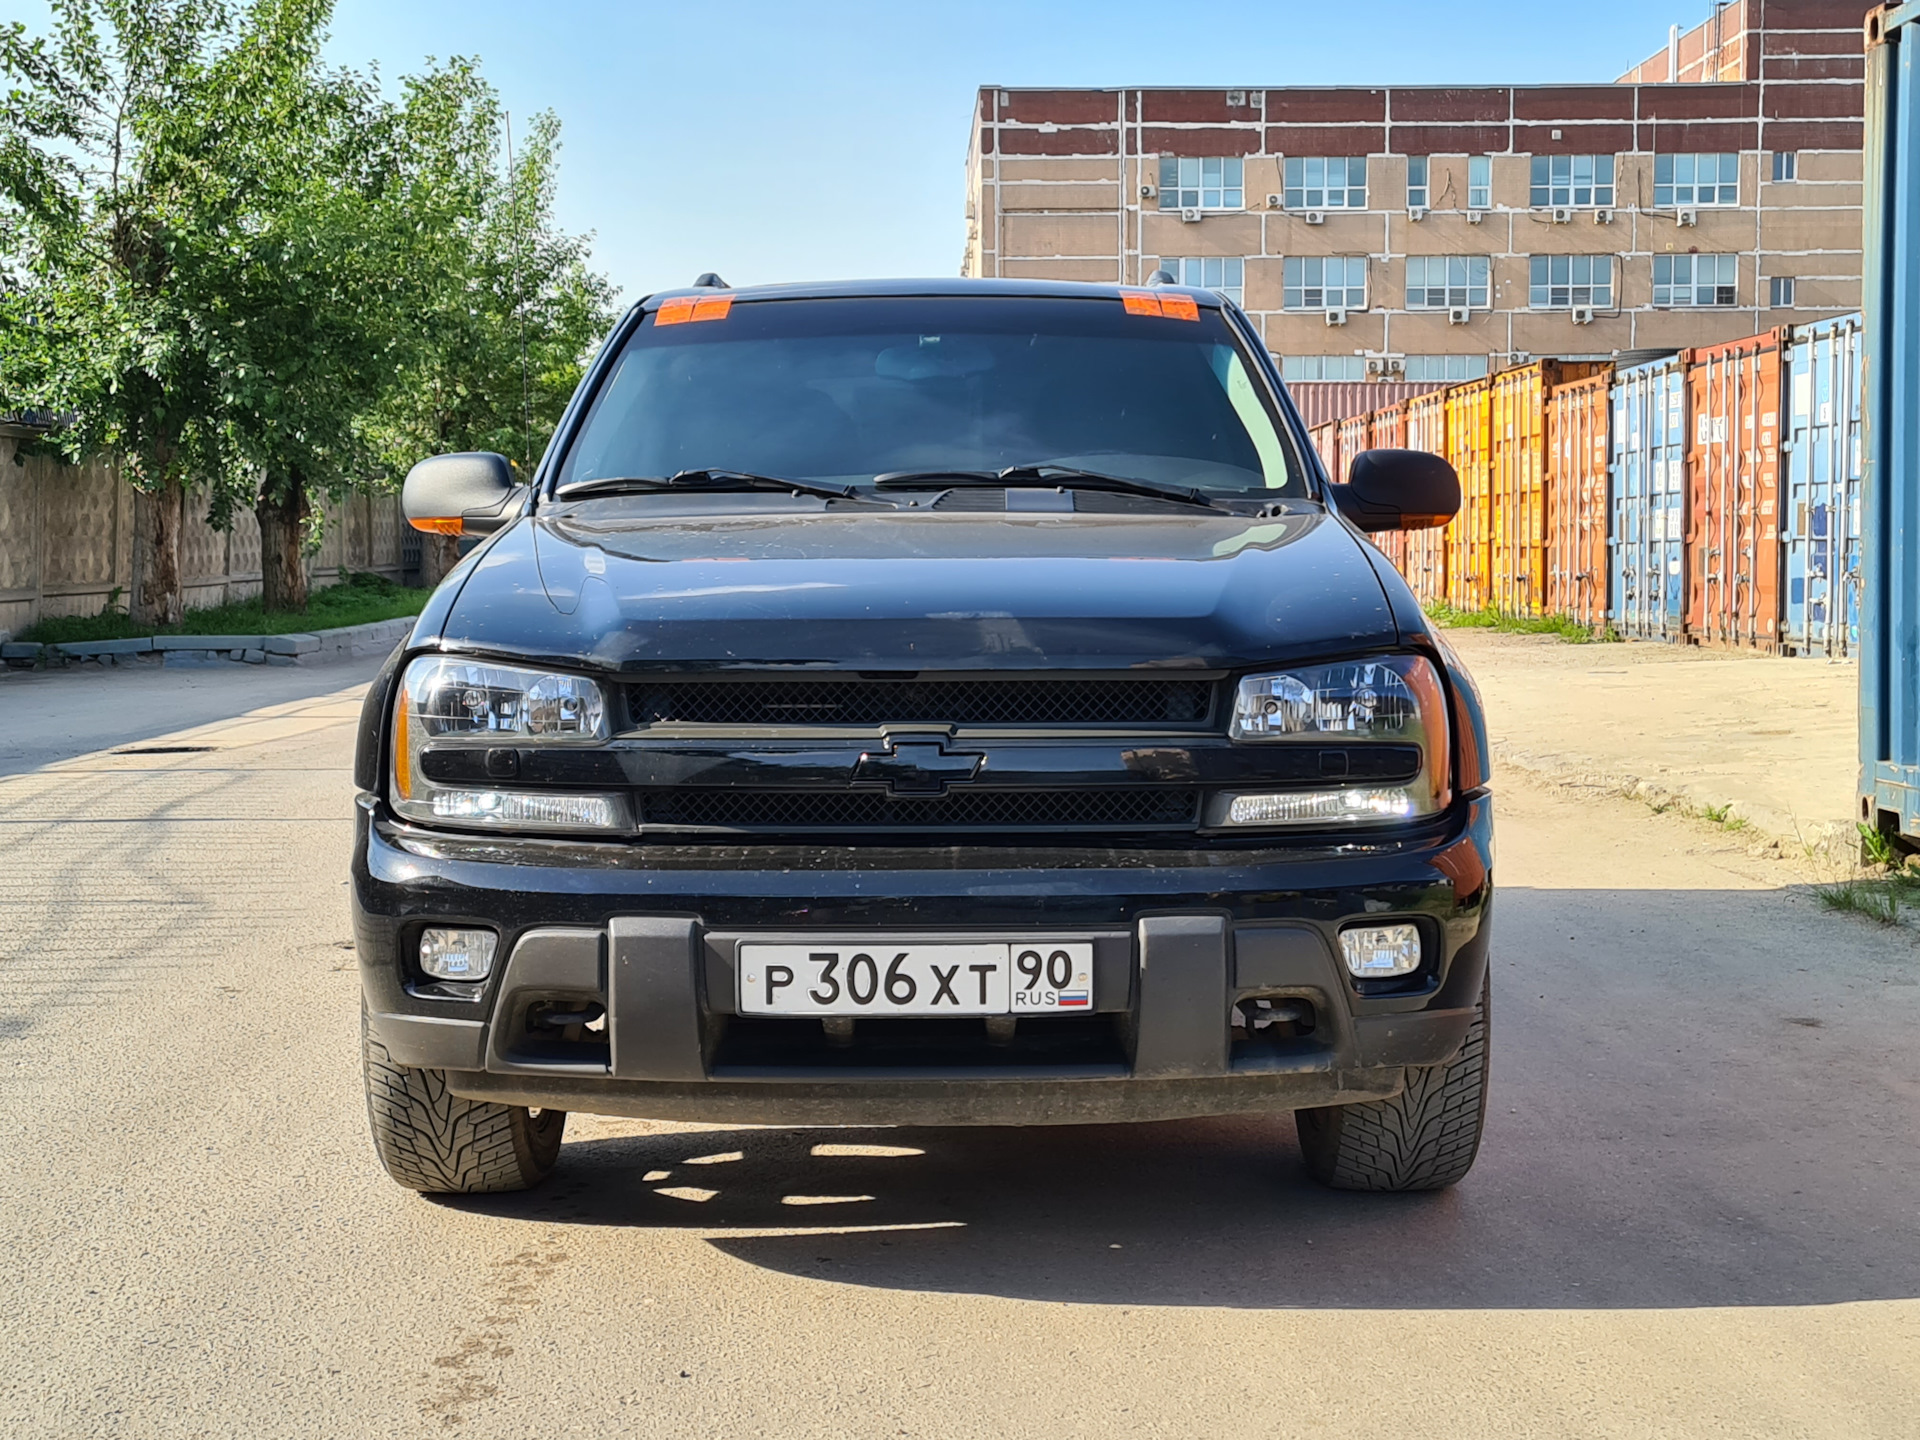 Ремонт печки шевроле трейлблейзер (chevrolet trailblazer) в москве - цены | автосервис ddcar